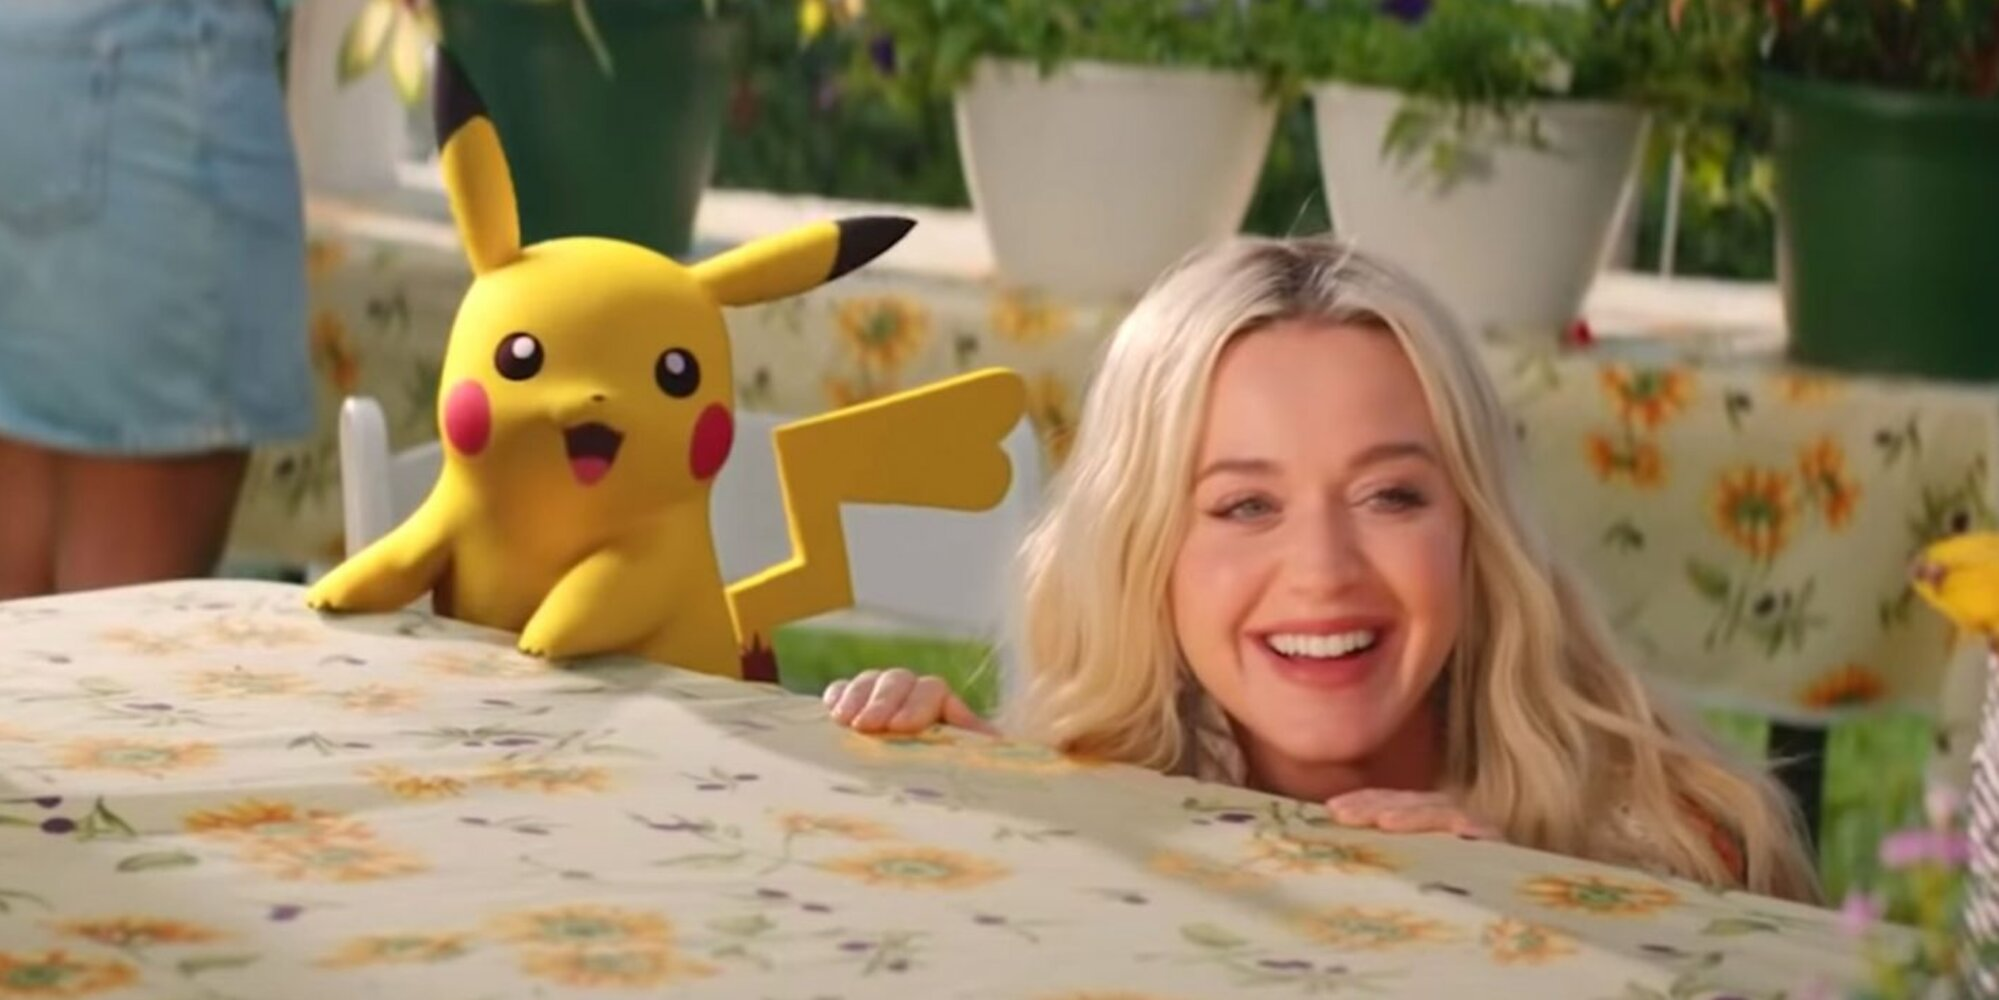 Katy Perry and Pikachu go on a glow-up journey in adorable 'Electric' music video.jpg